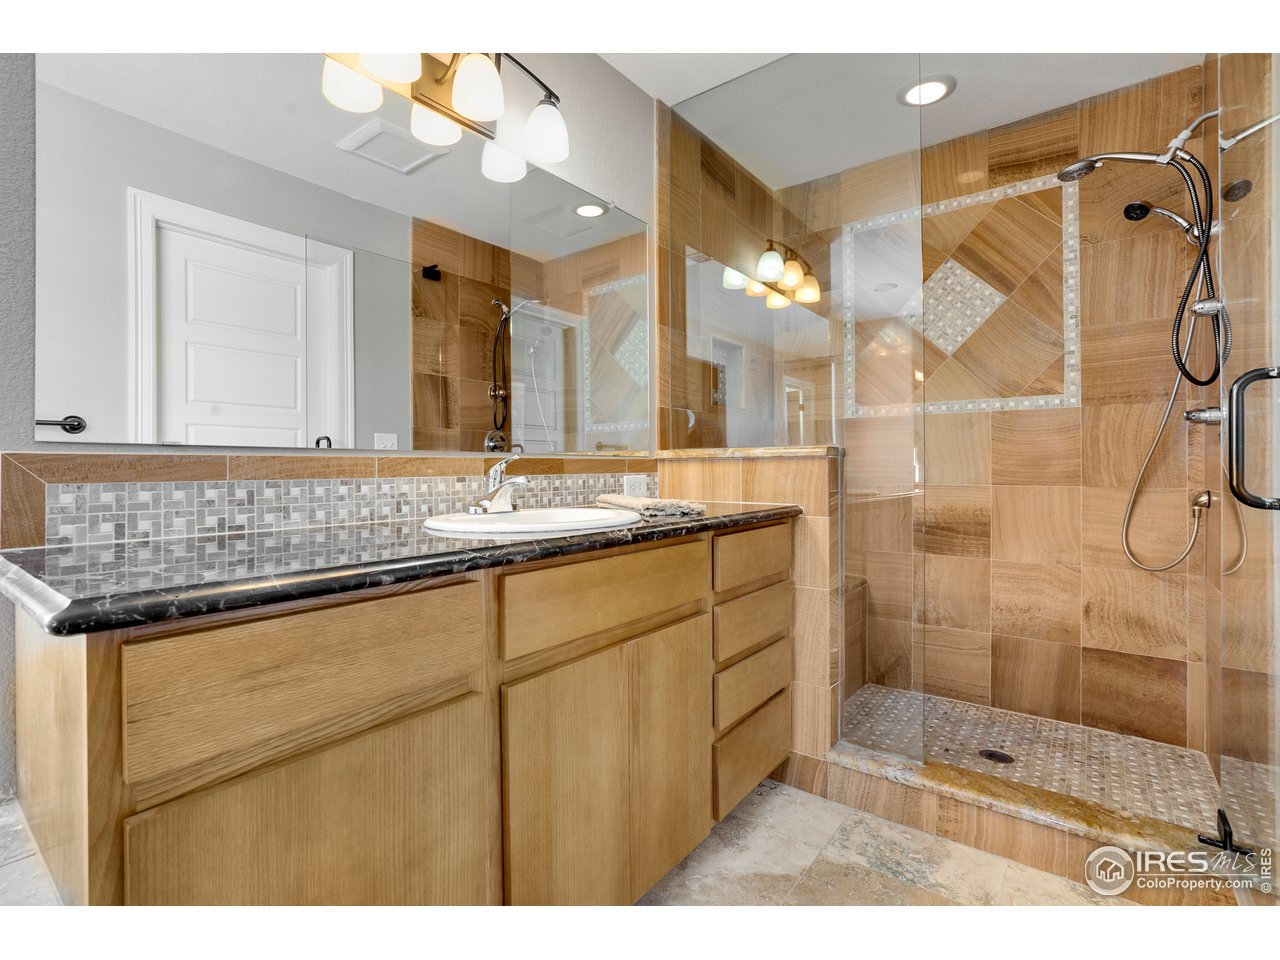 Marble shower with euro-glass offers the feel of a tranquil spa retreat